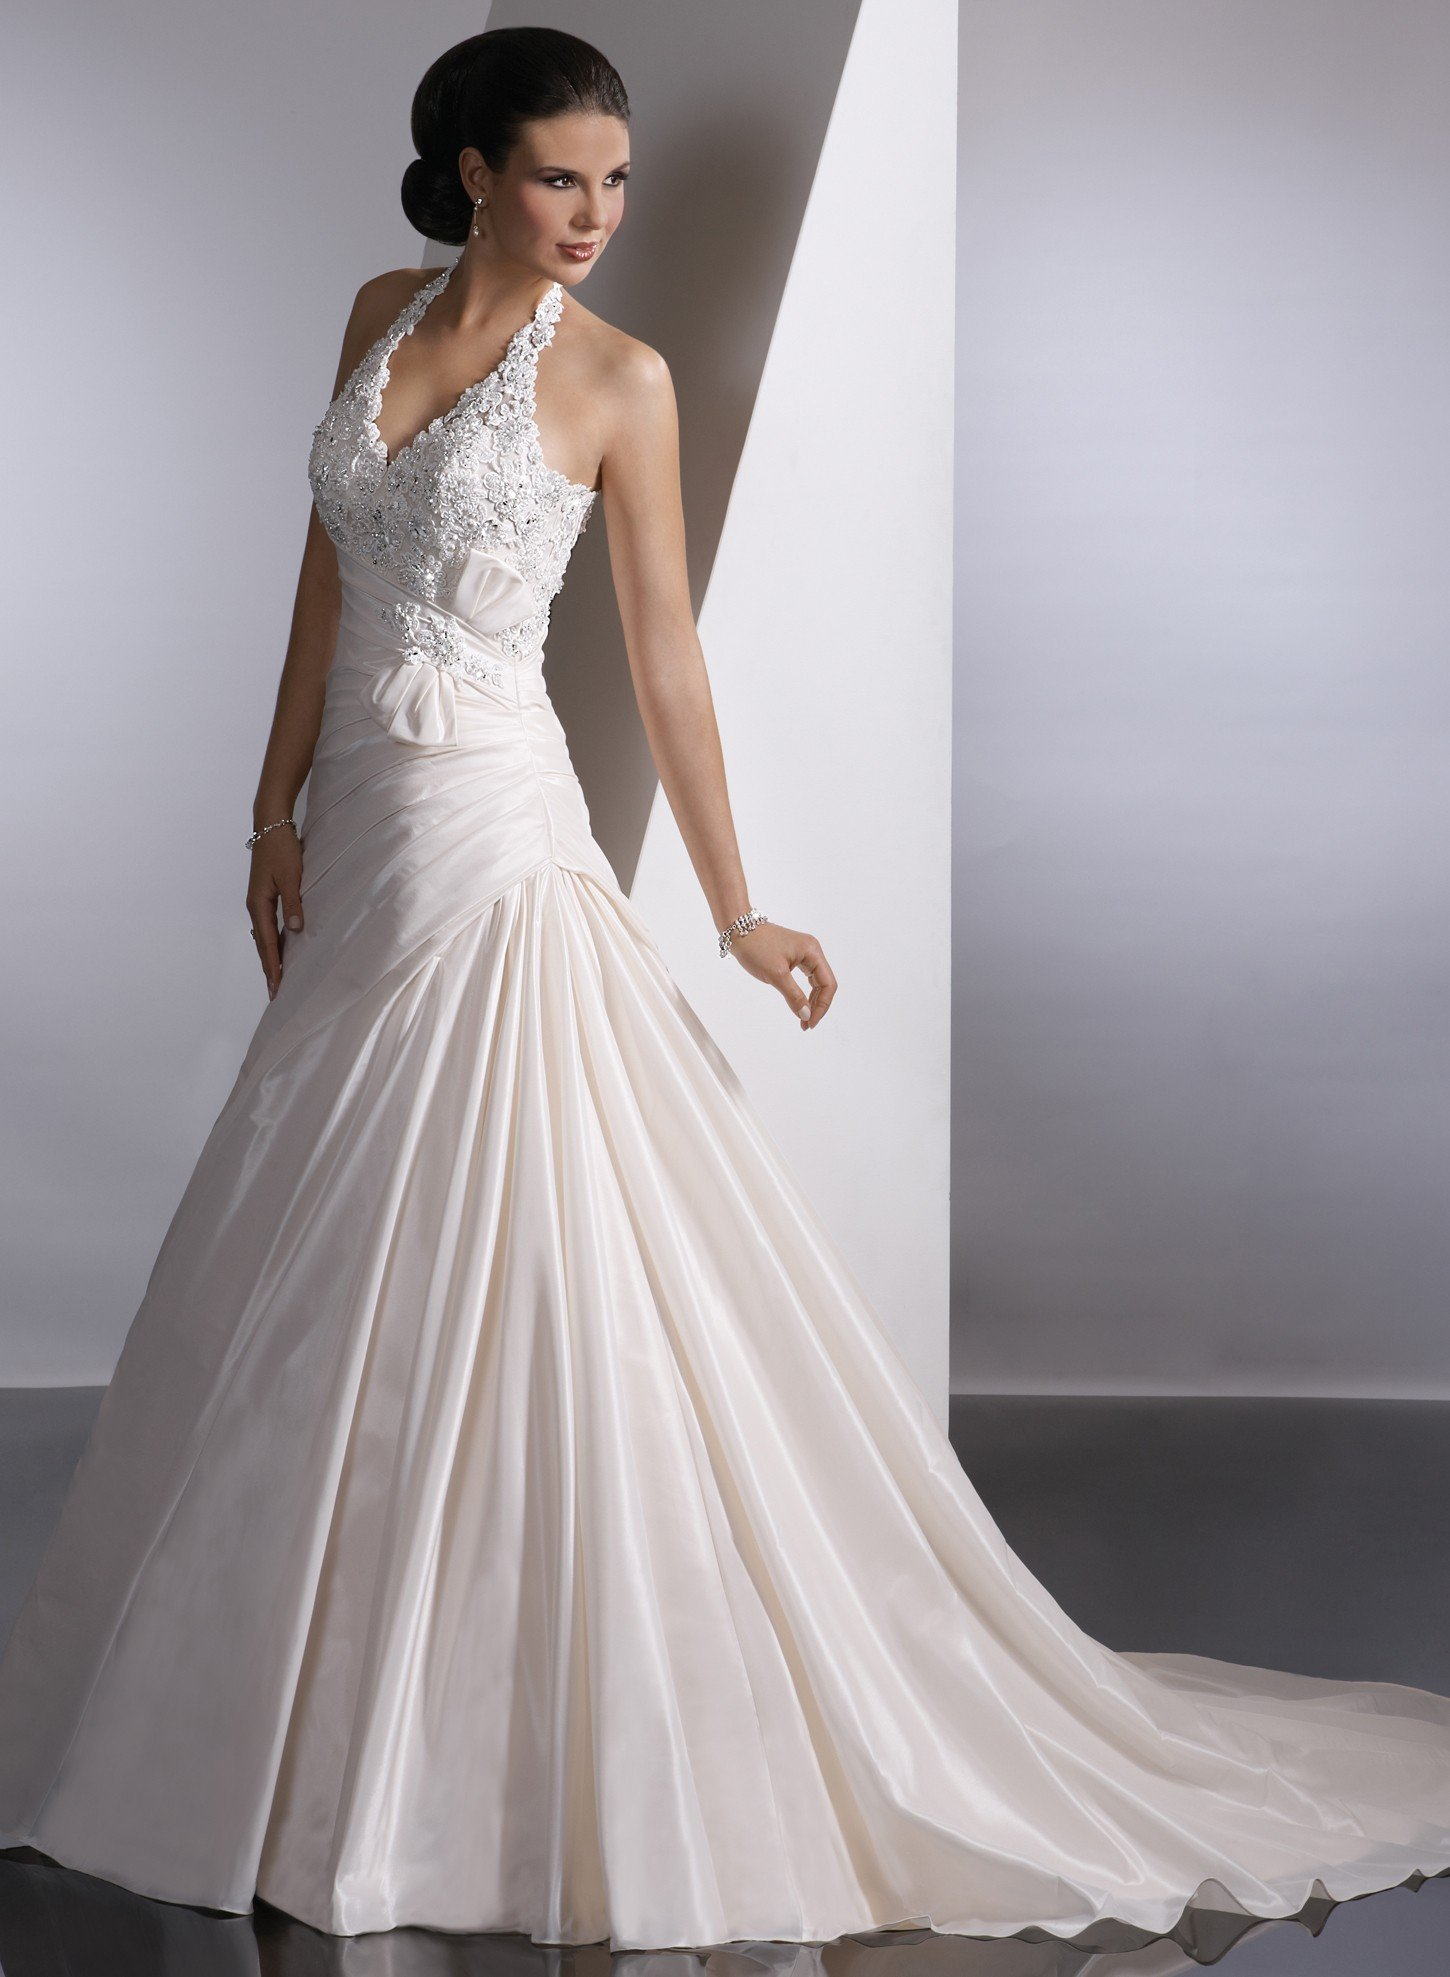 Halter Wedding Dresses With Right Necklines Are Ideal Choices